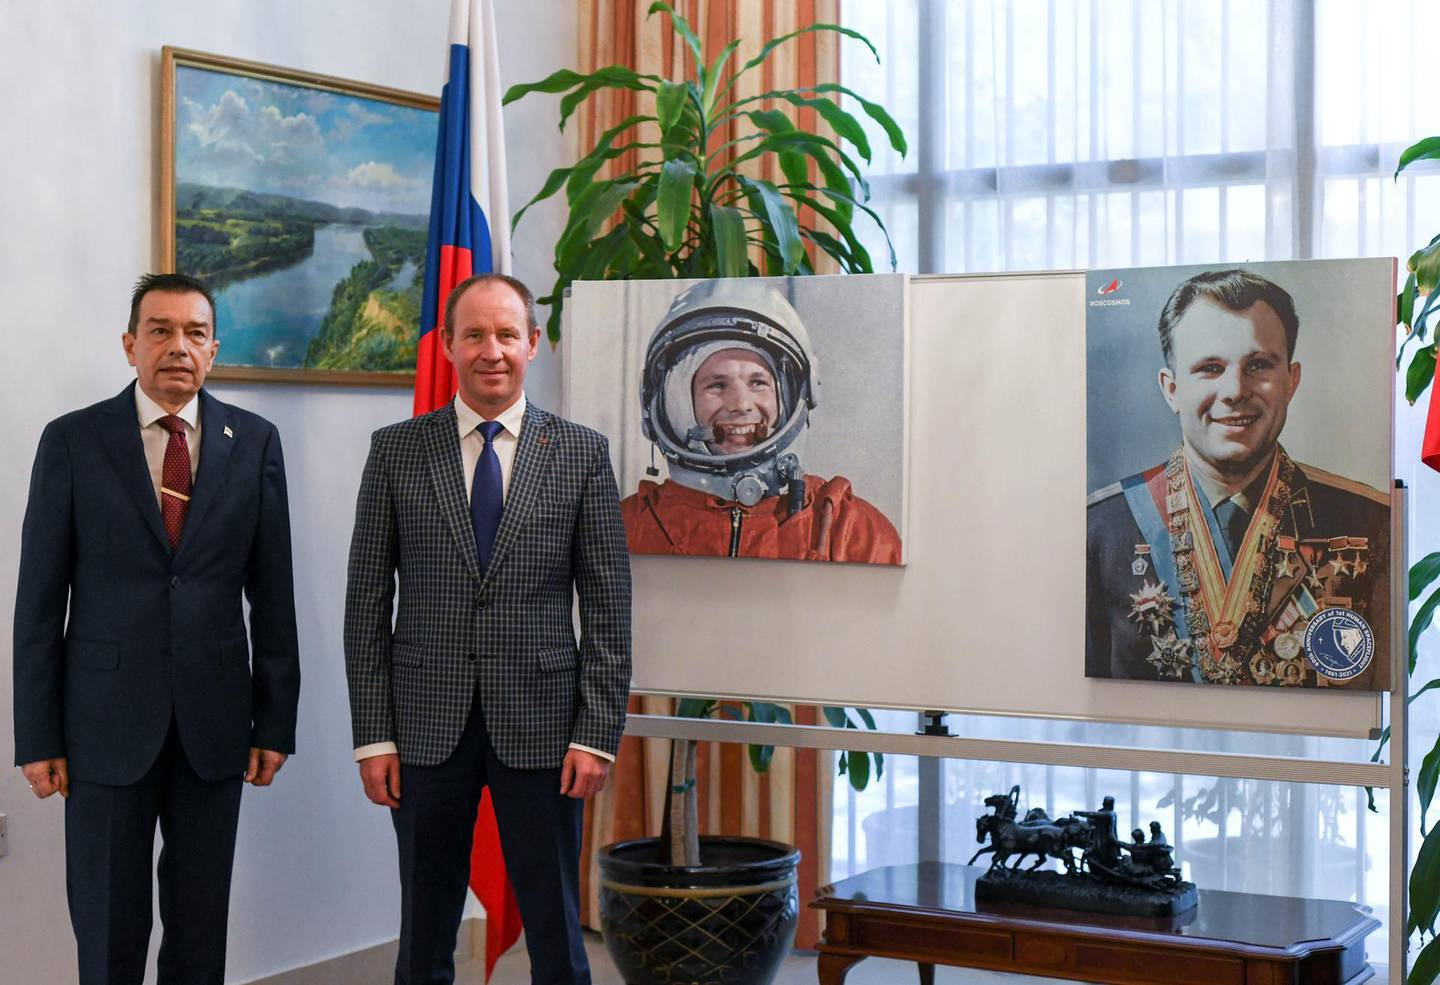 Abu Dhabi, United Arab Emirates - Yury Vidakas, Senior Counsellor & Deputy Head of Mission with Anatoly Krasnikov, Roscosmos Representative to Gulf Region at the celebration of the 60th anniversary for the first human spaceflight at the Russian Embassy. Khushnum Bhandari for The National